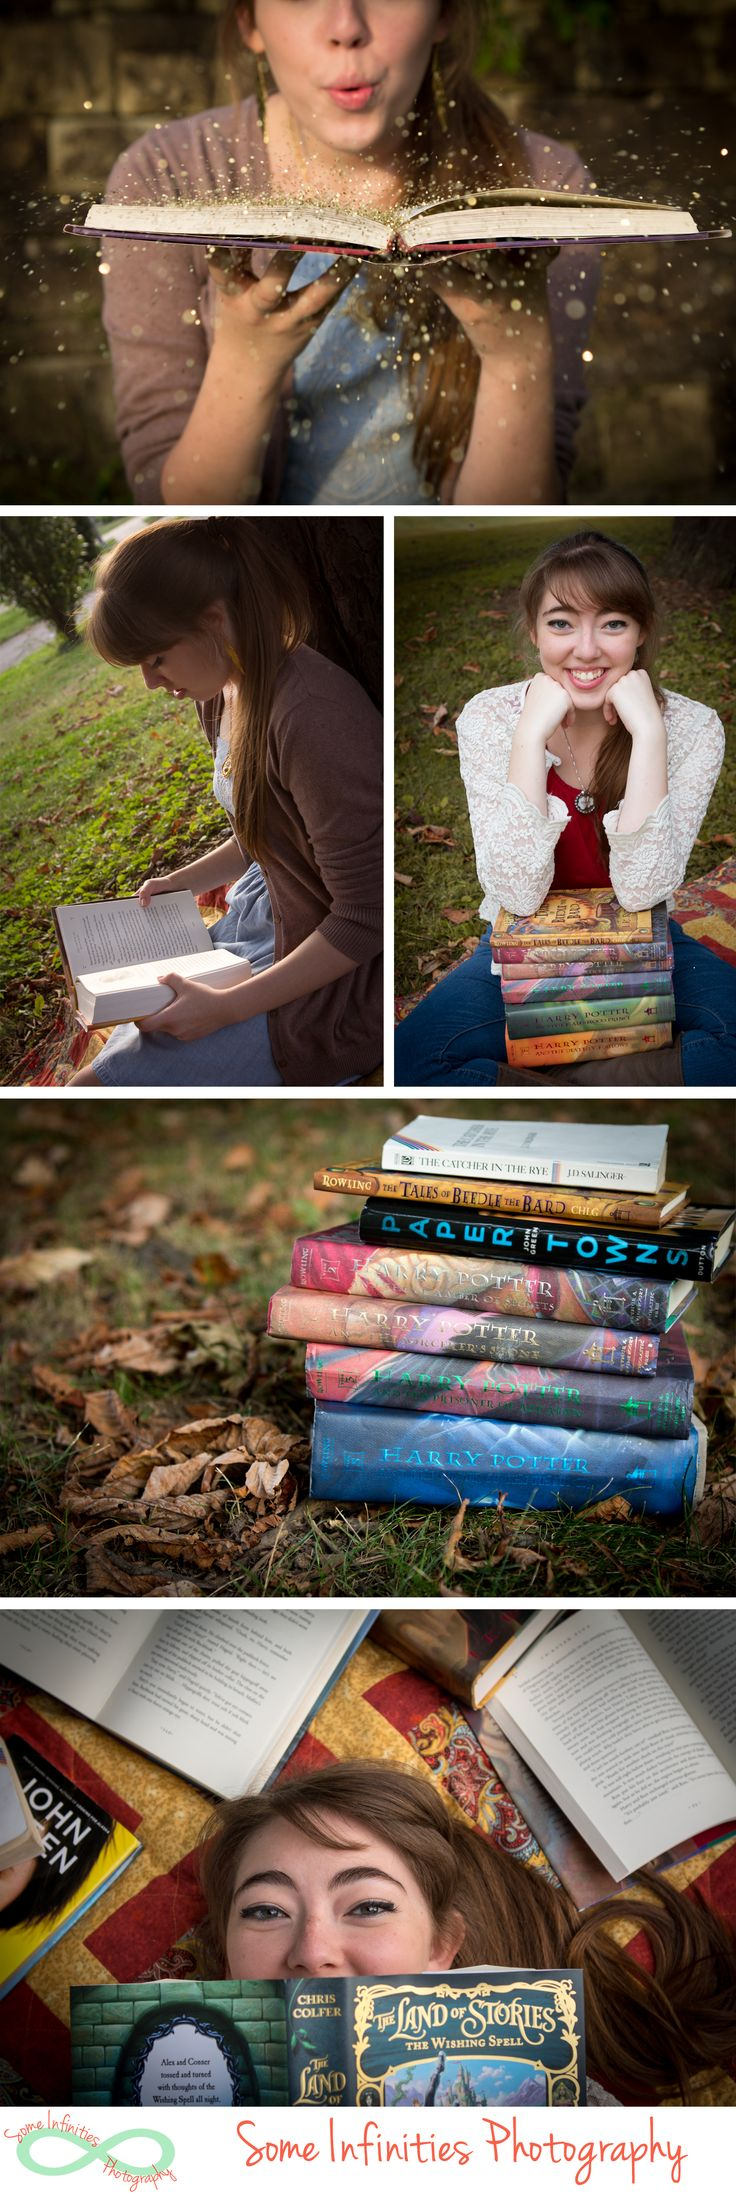 Senior photos with books! so cute!